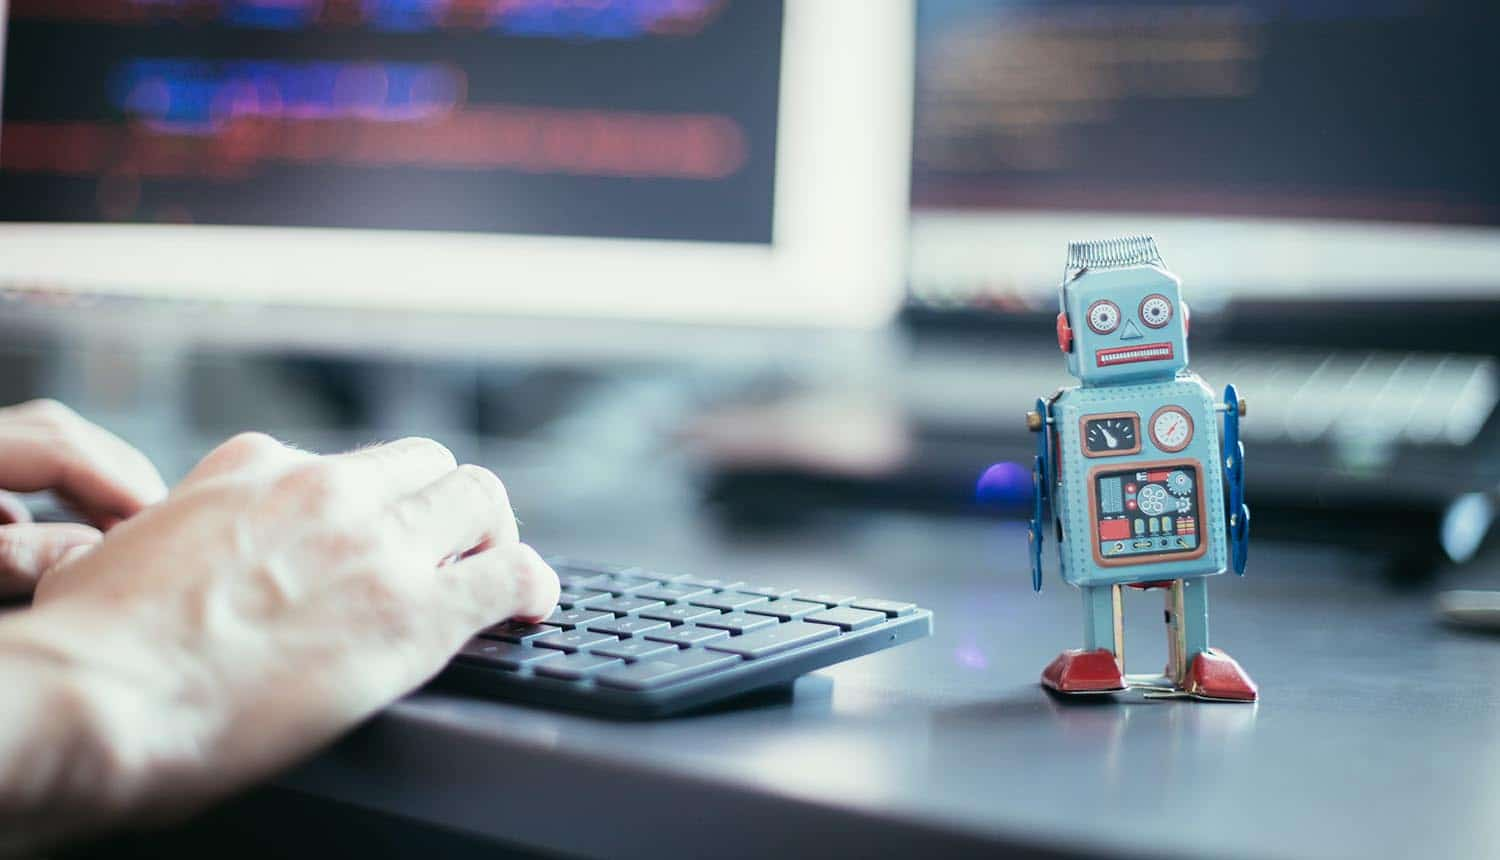 Man typing on keyboard next to a robot showing Russia's FSB building a massive IoT botnet capable of running nation-state DDoS attacks